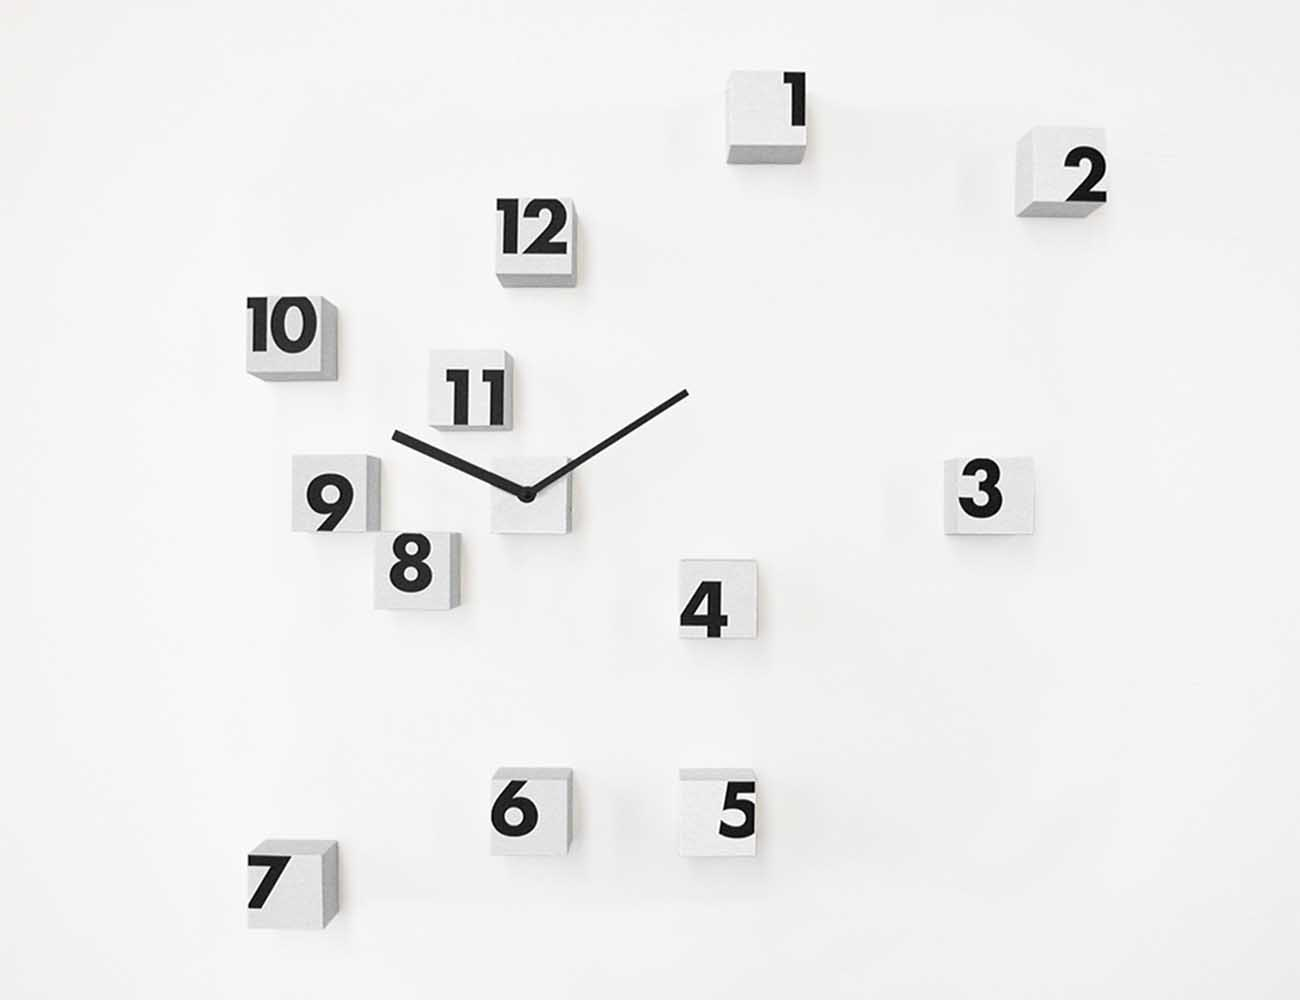 RND Time Wall Clock by Progetti – Using Randomly Placed Cubes to Display Time